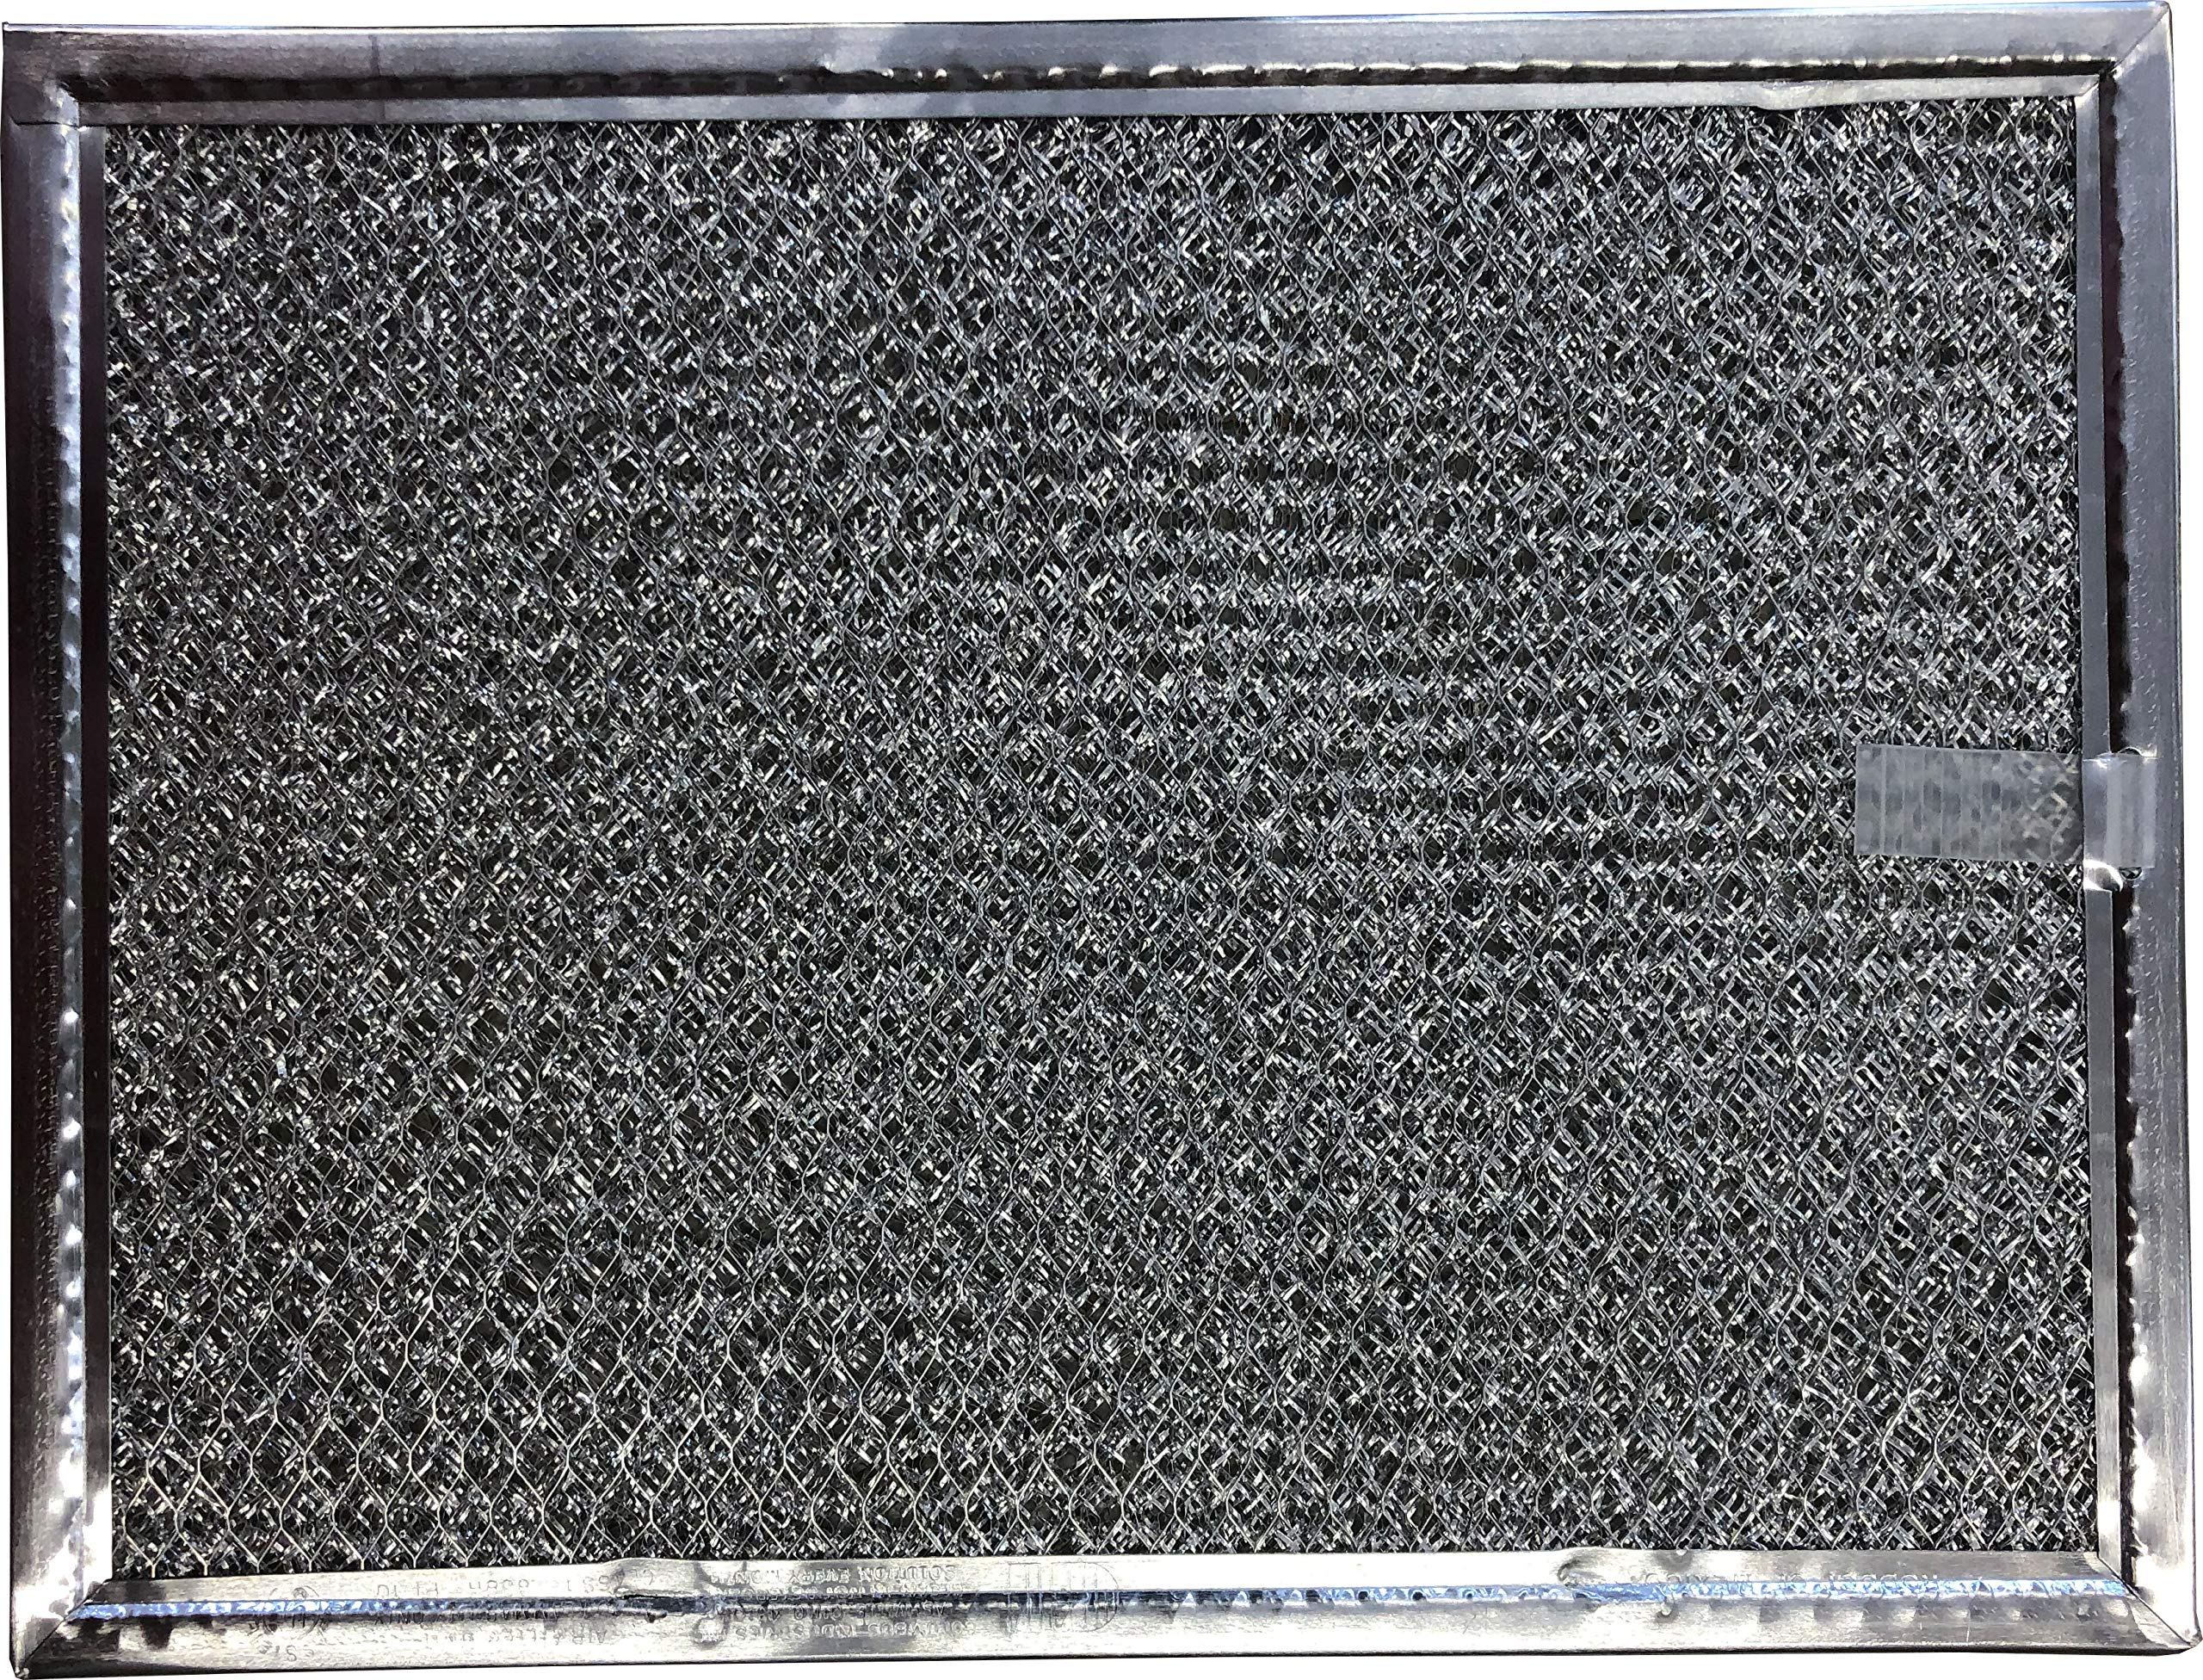 Replacement Aluminum Range Filter Compatible With Estate 4358030, Kitchenaid 4358030, Whirlpool 4358